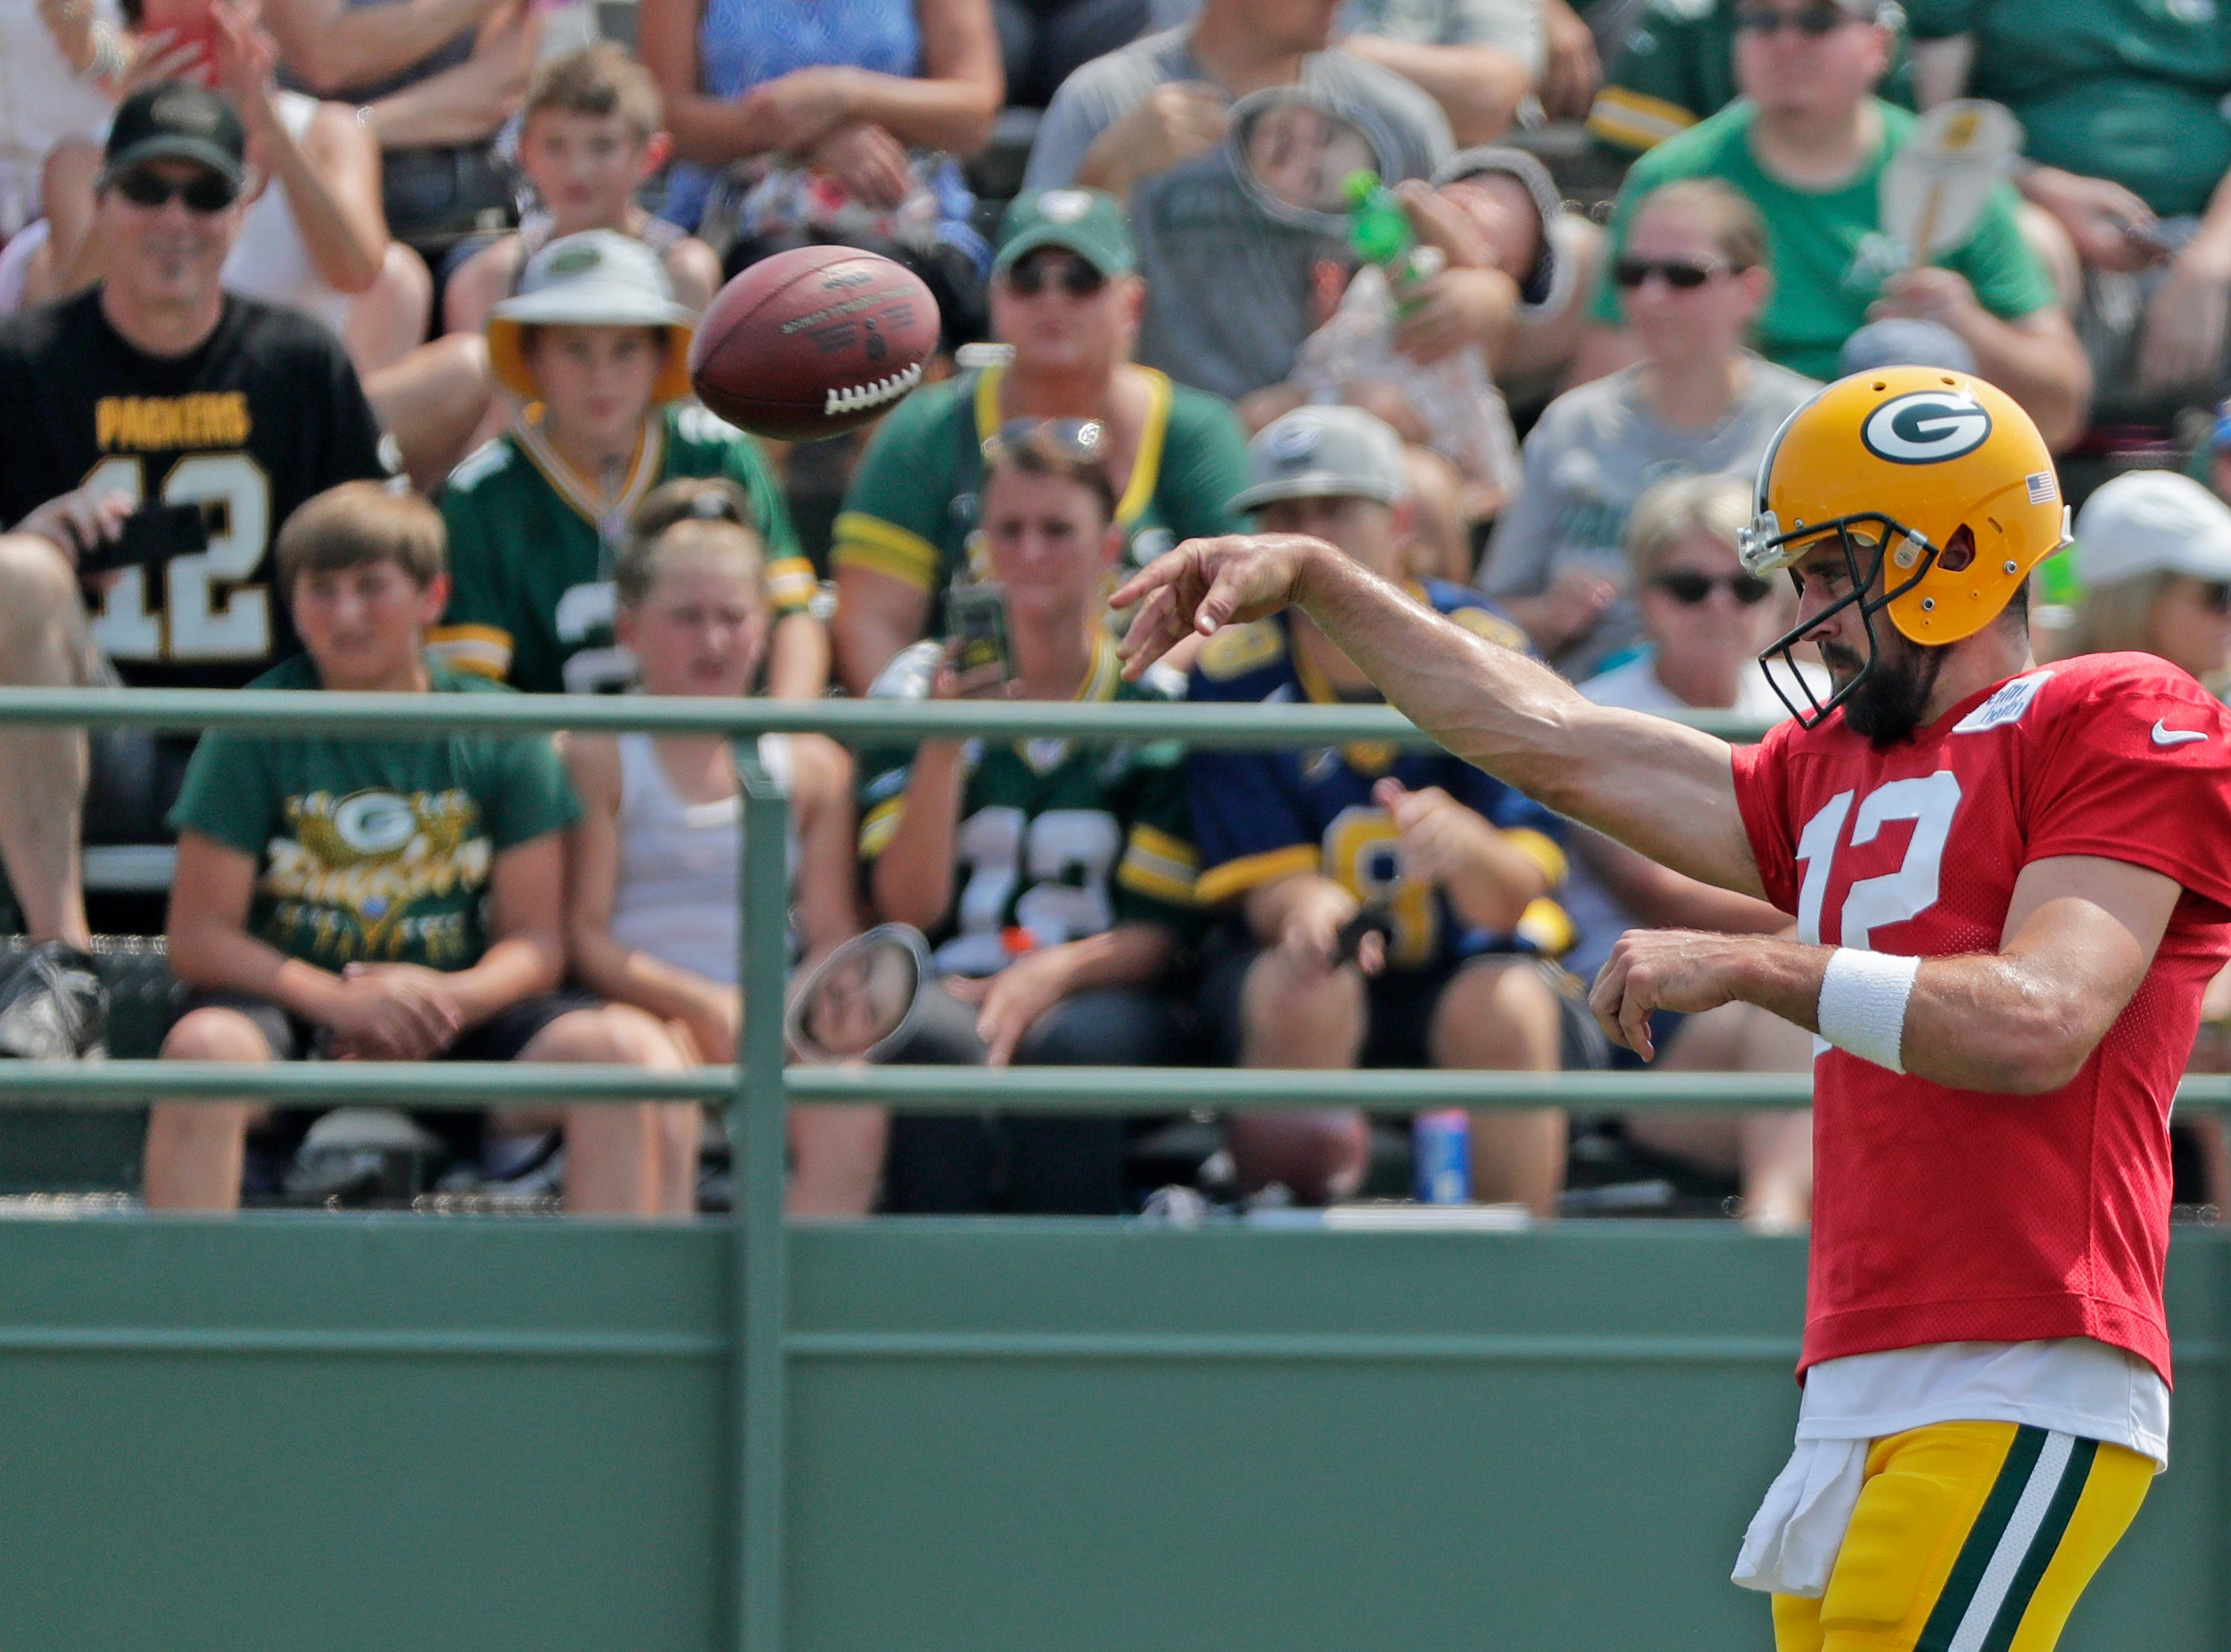 Green Bay Packers quarterback Aaron Rodgers (12) throws during training camp practice at Ray Nitschke Field on Sunday, August 12, 2018 in Ashwaubenon, Wis. 